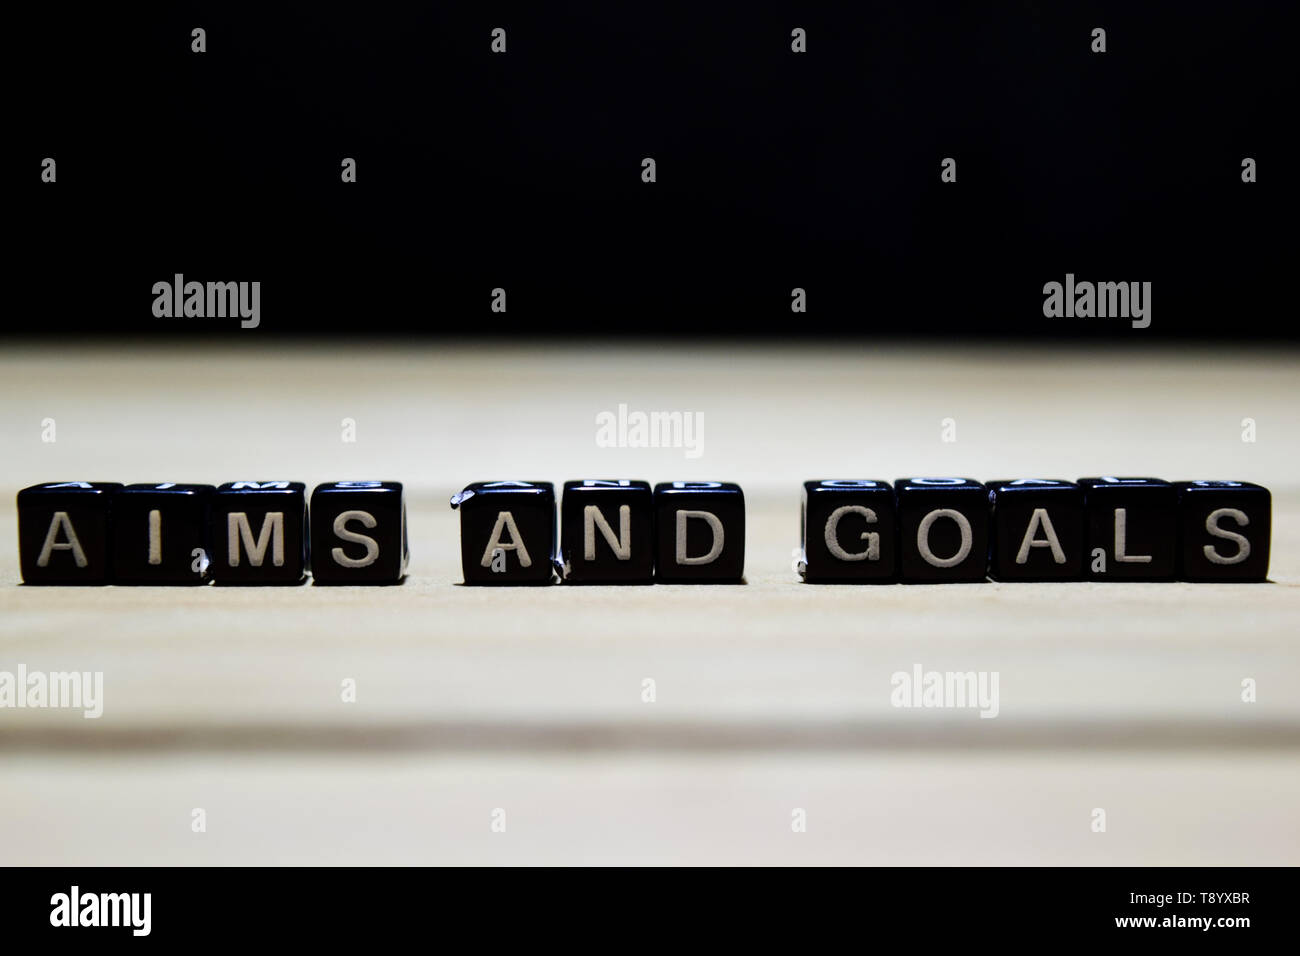 Aims and Goals concept wooden blocks on the table. With personal development and motivation concept on blurred or black background Stock Photo